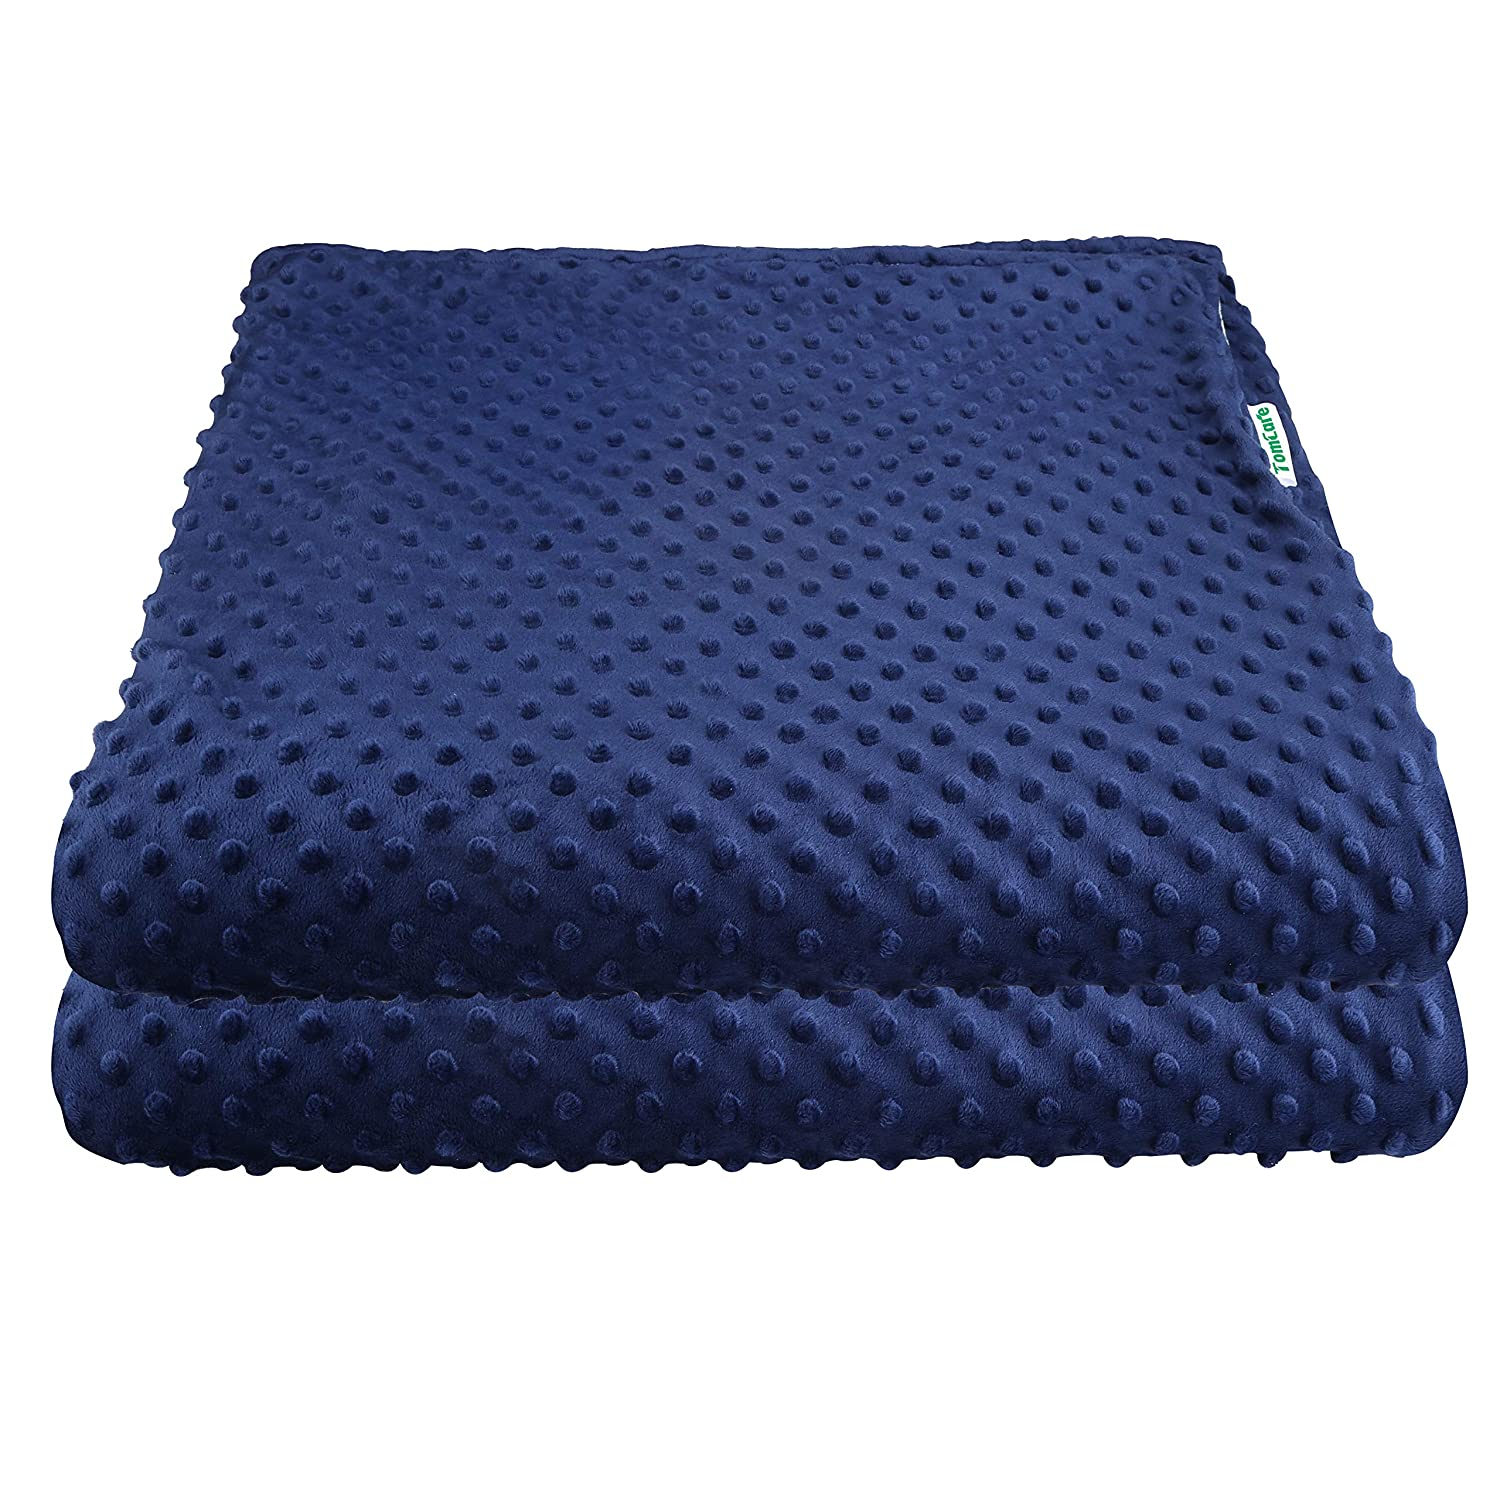 TomCare Duvet Cover for Weighted Blankets Bedding Blanket Cover Weighted Blanket Cover Removable Soft Minky Dot Style Very Easy to Care Navy Blue(60'x80' Duvet Cover ONLY)